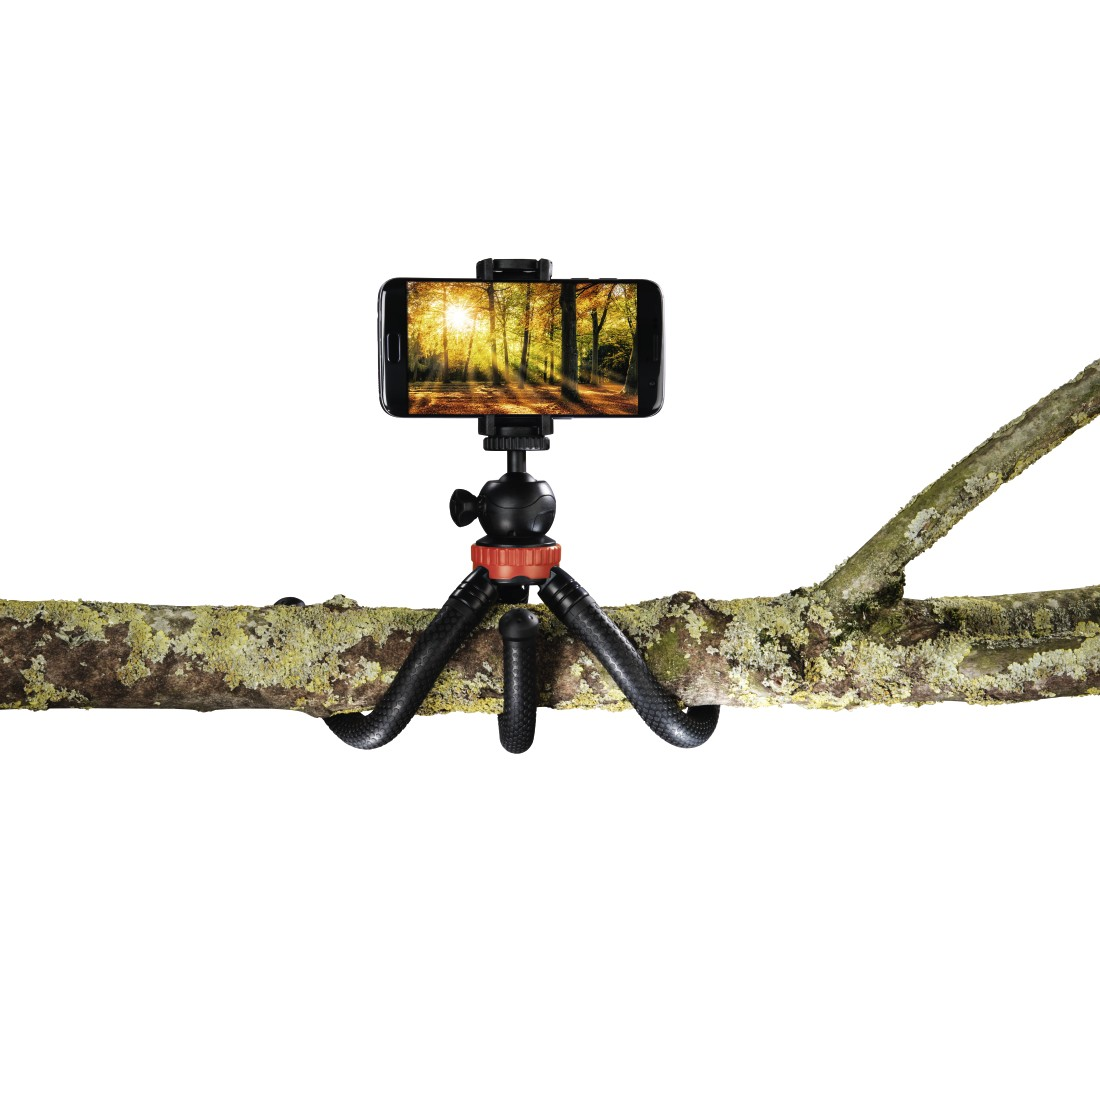 "awx High-Res Appliance - Hama, ""FlexPro"" Tripod for Smartphone, GoPro and Photo Cameras, 27 cm, red"